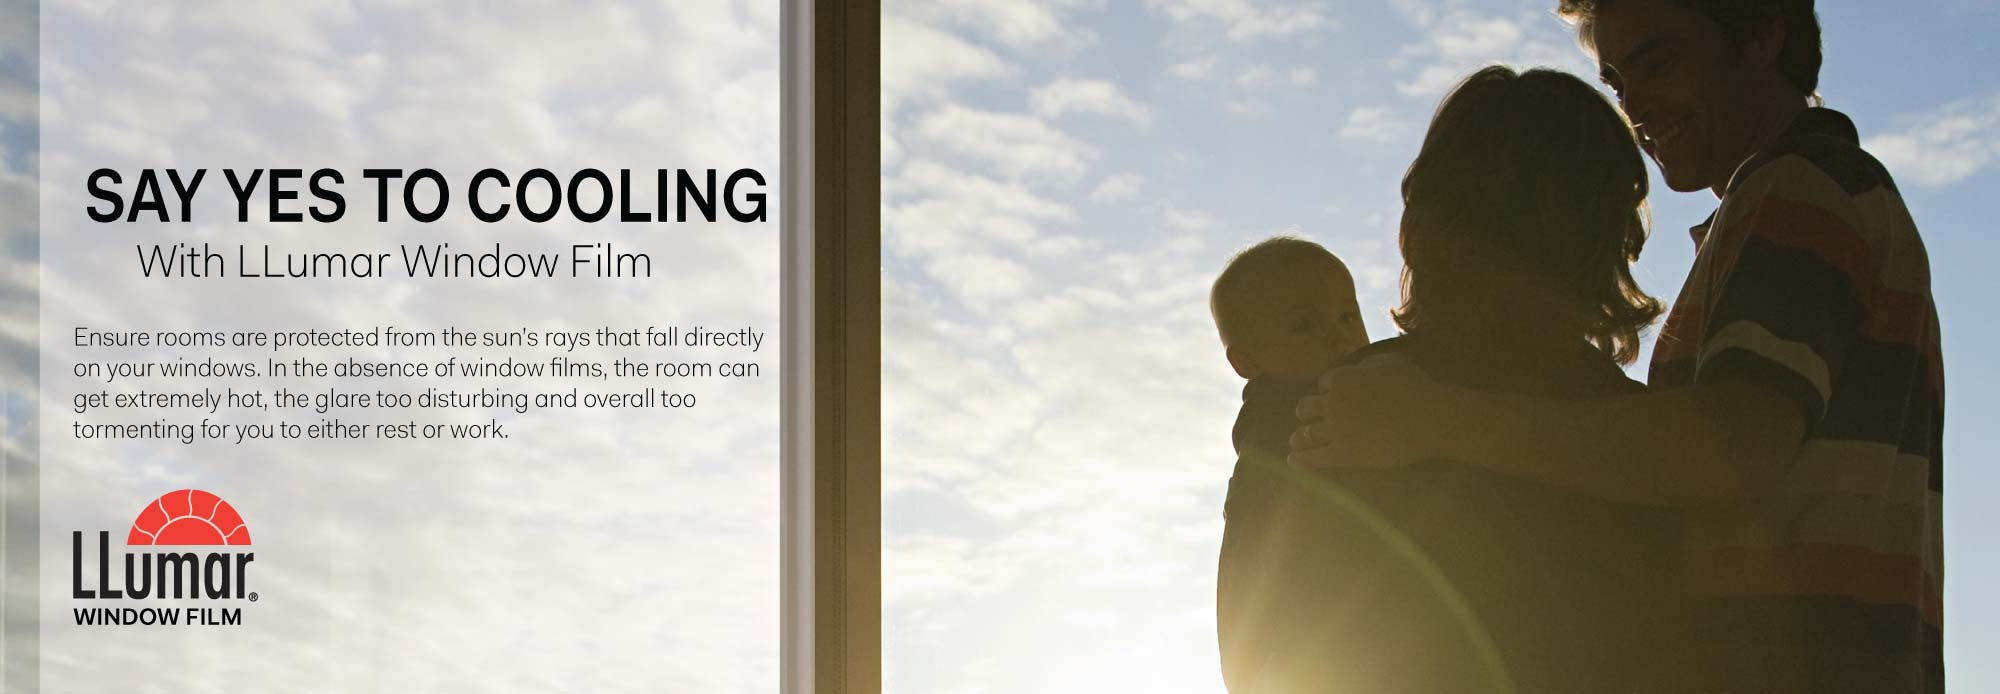 SAY YES TO COOLING WITH LLUMAR® WINDOW FILM